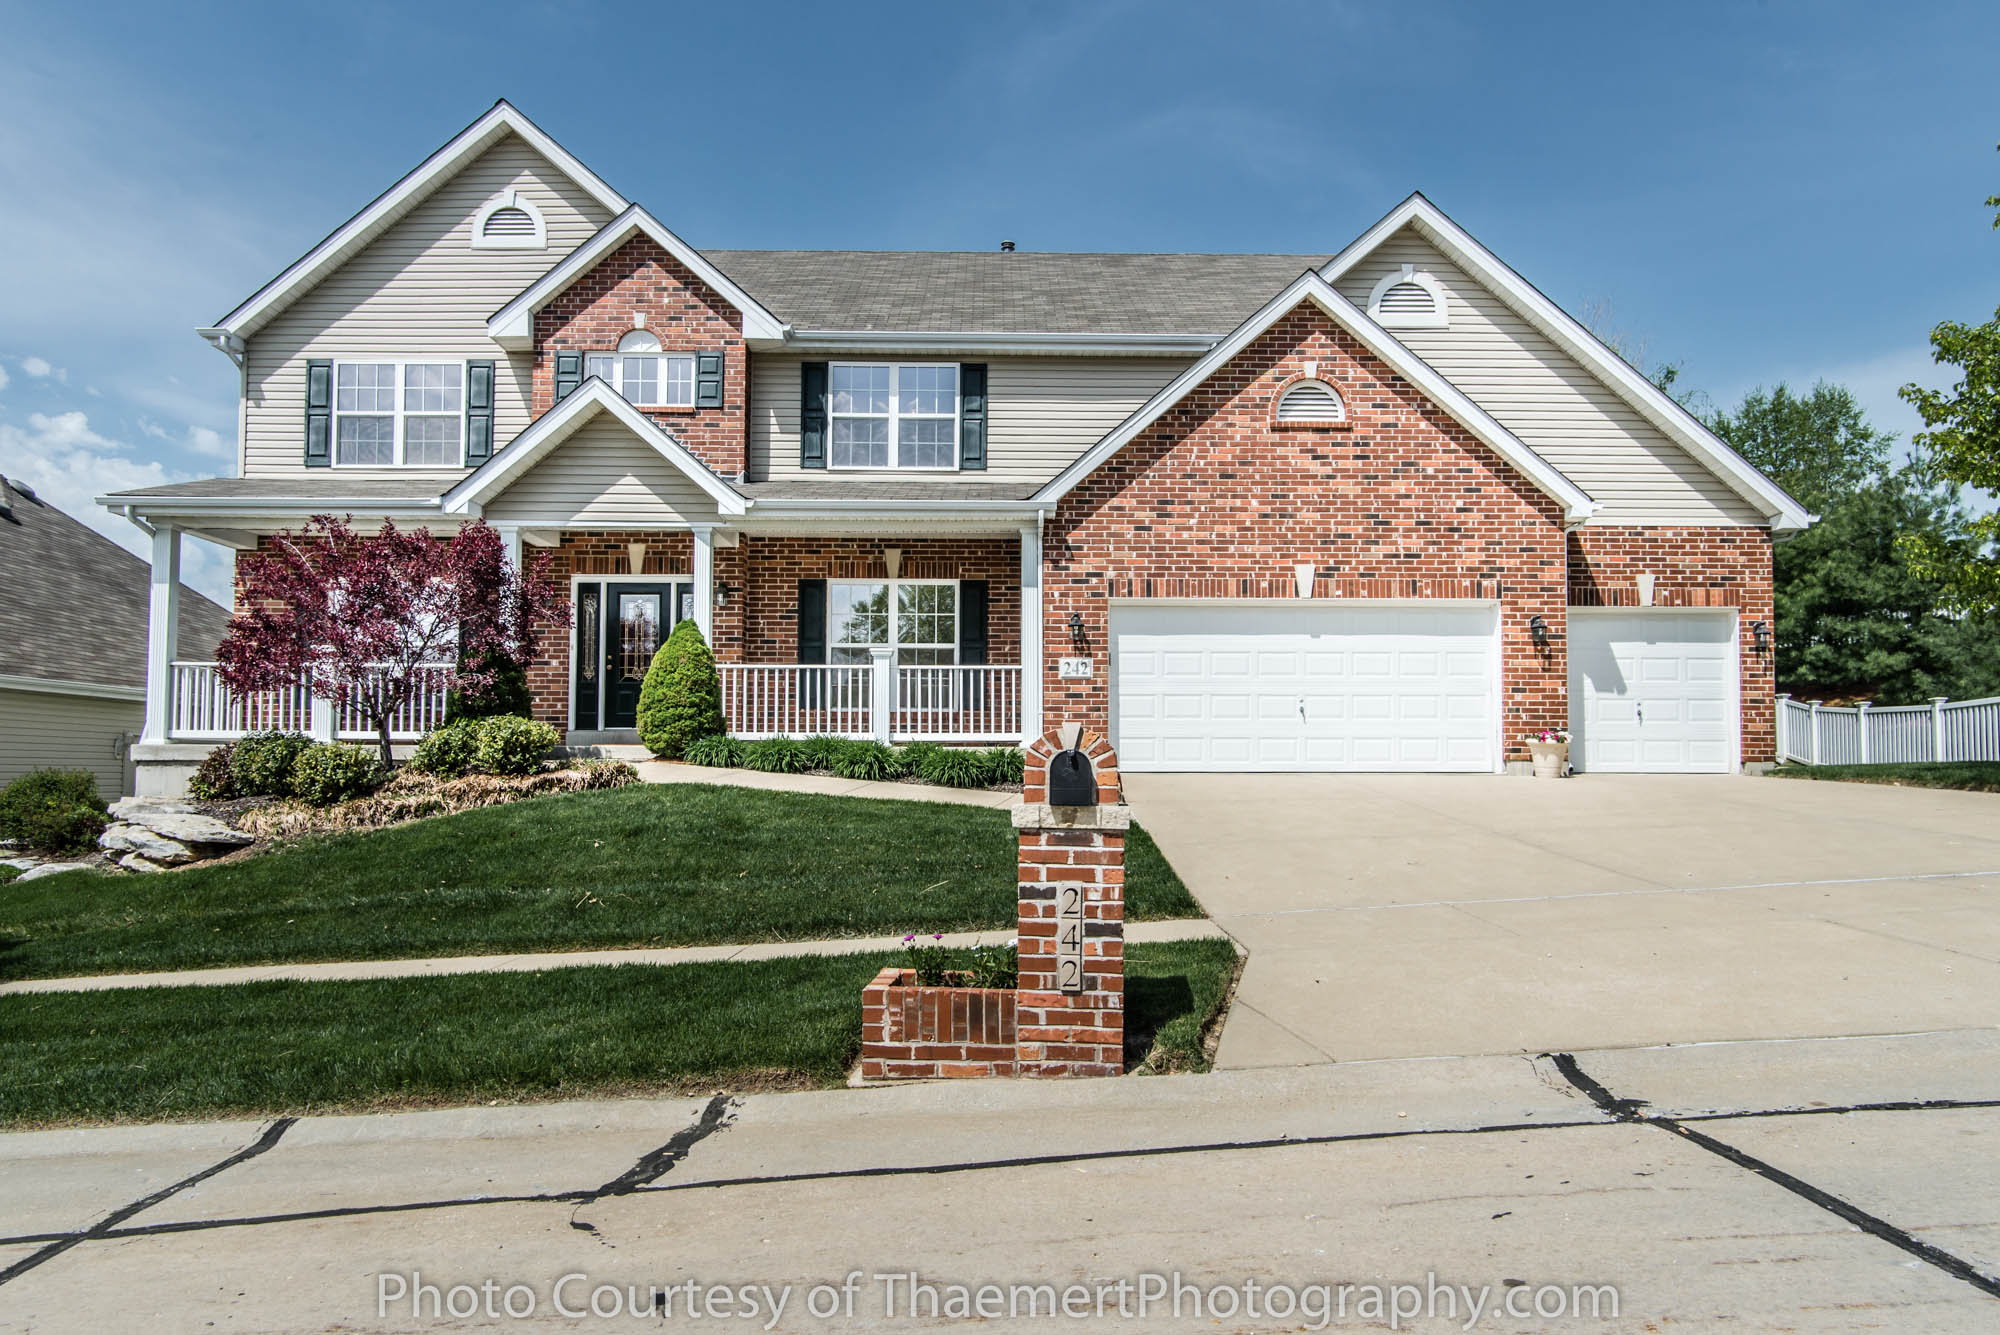 St_Charles_Real_Estate_Photographer_401.jpg